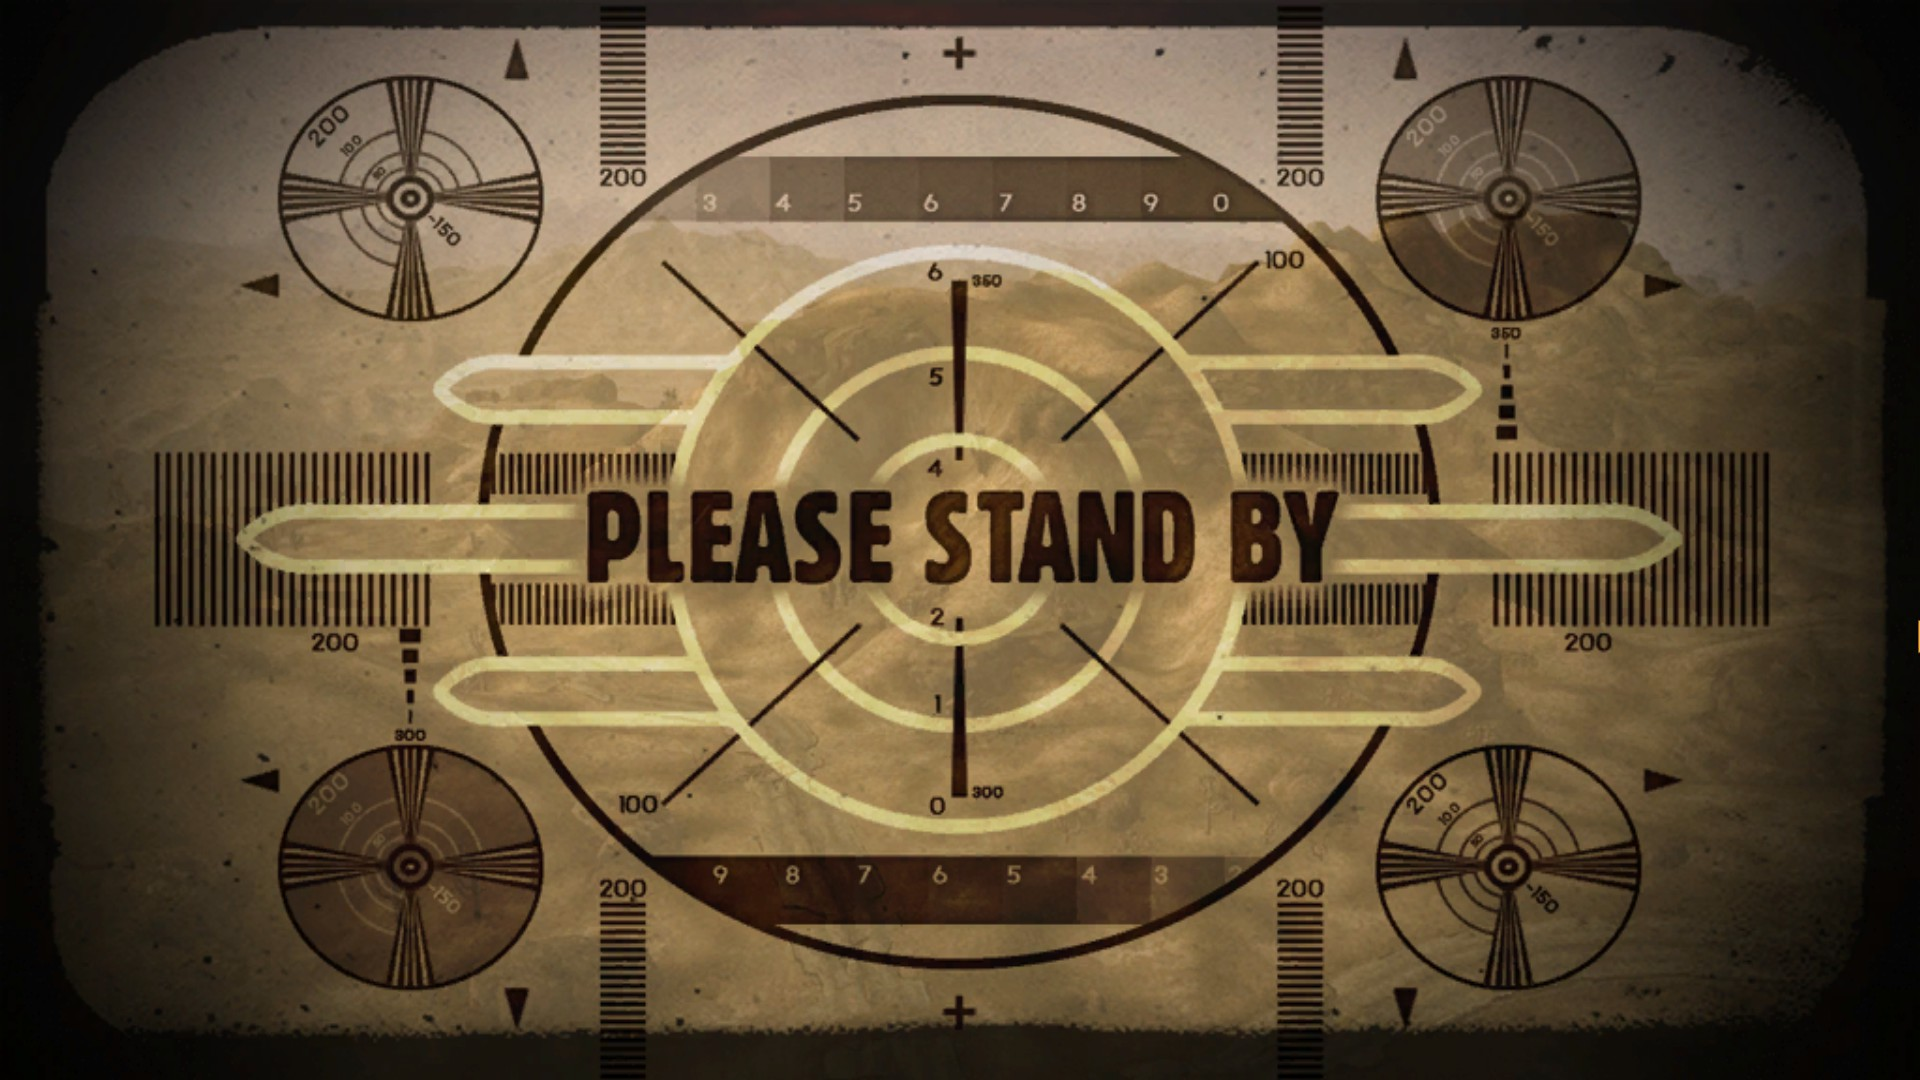 Please Stand By image ...